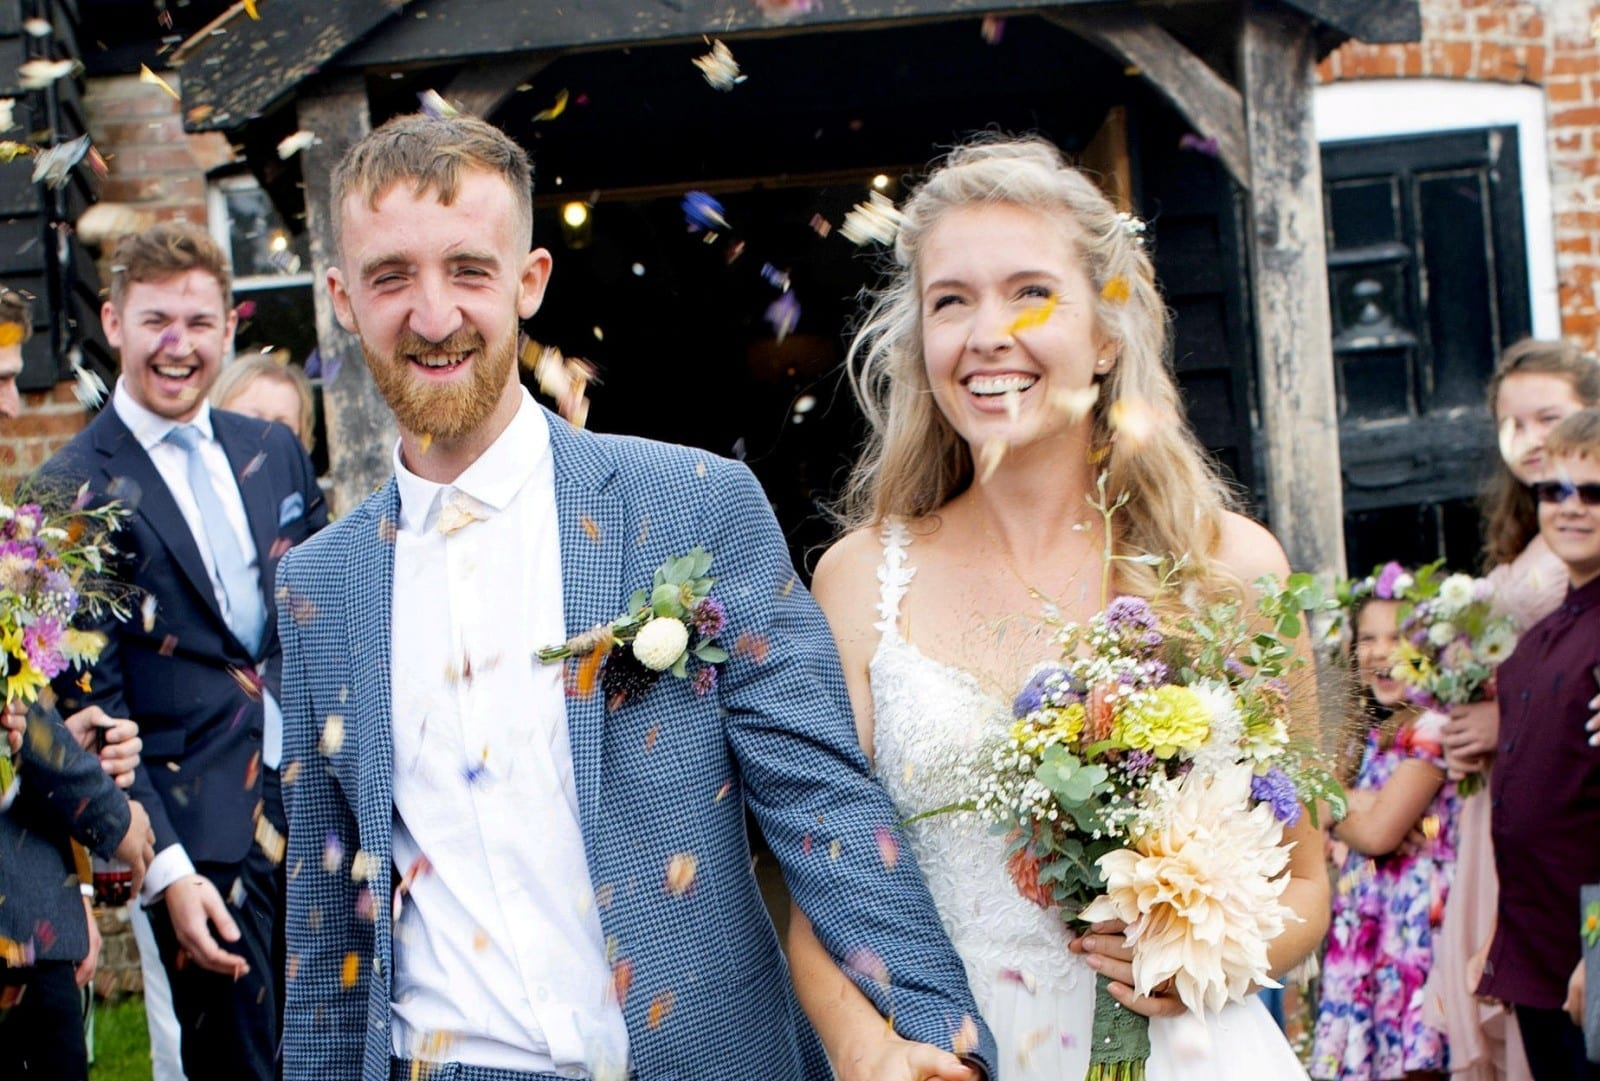 Green-Fingered Couple Rent An Allotment To Grow All Their Own Flowers - For Their WEDDING